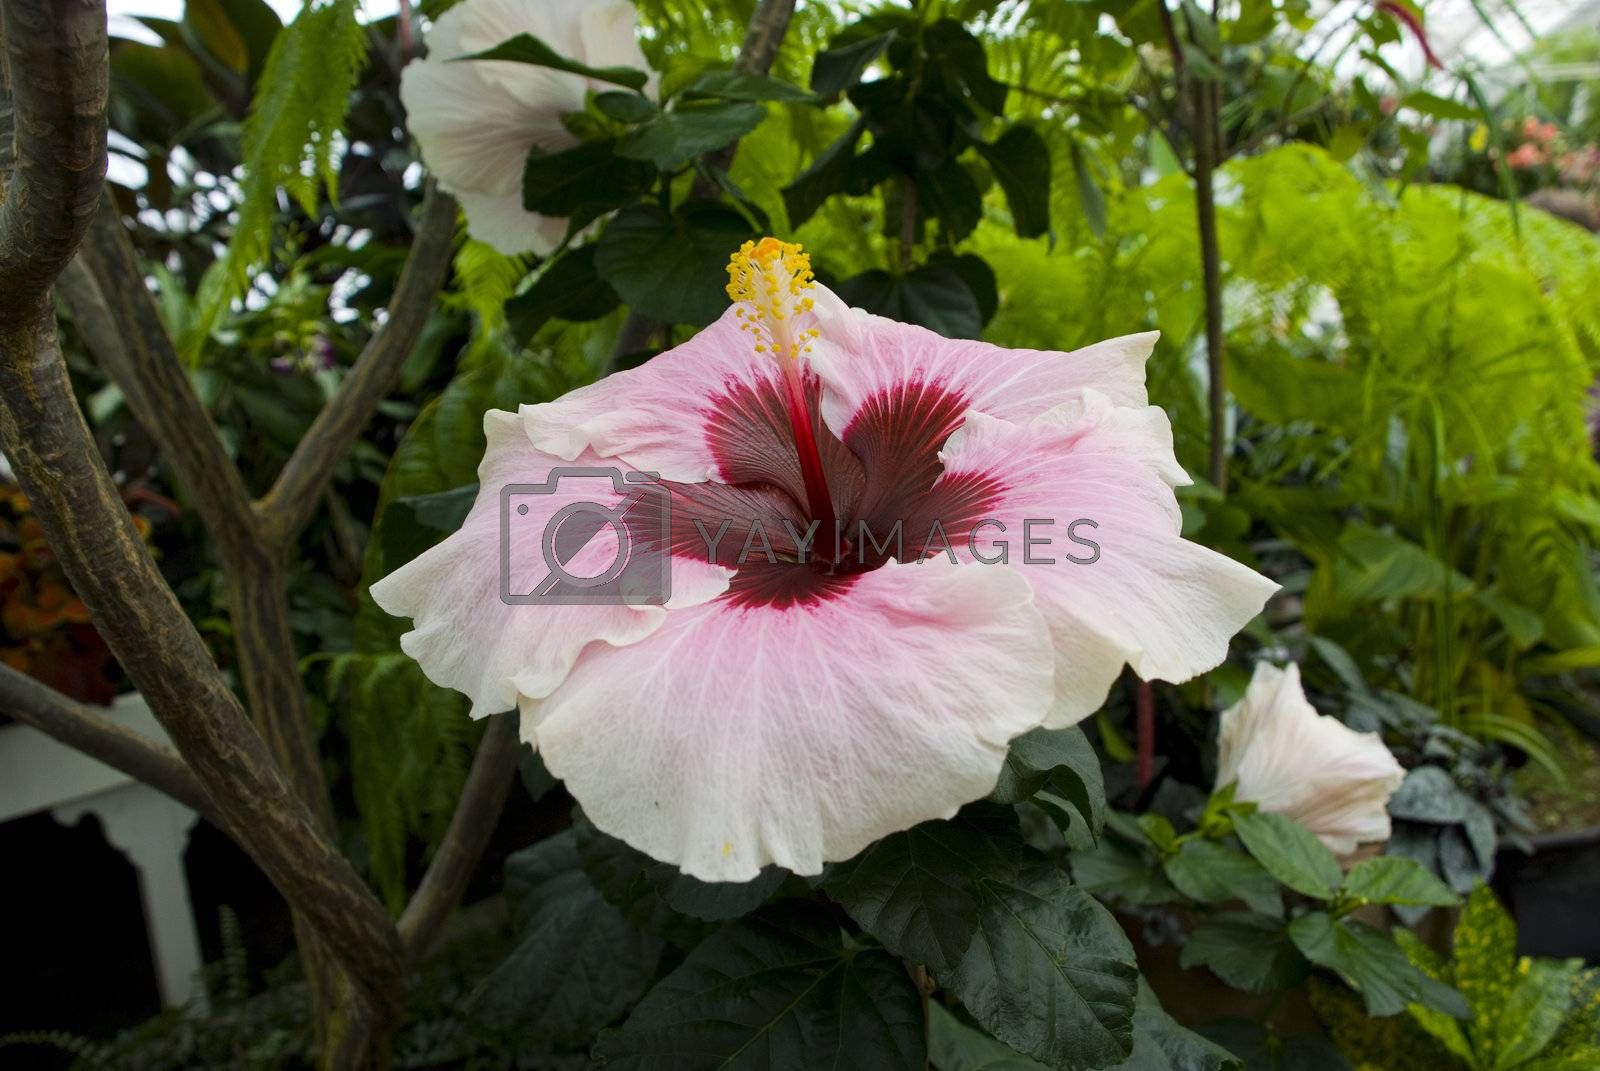 Royalty free image of Hibiscus by omairkha